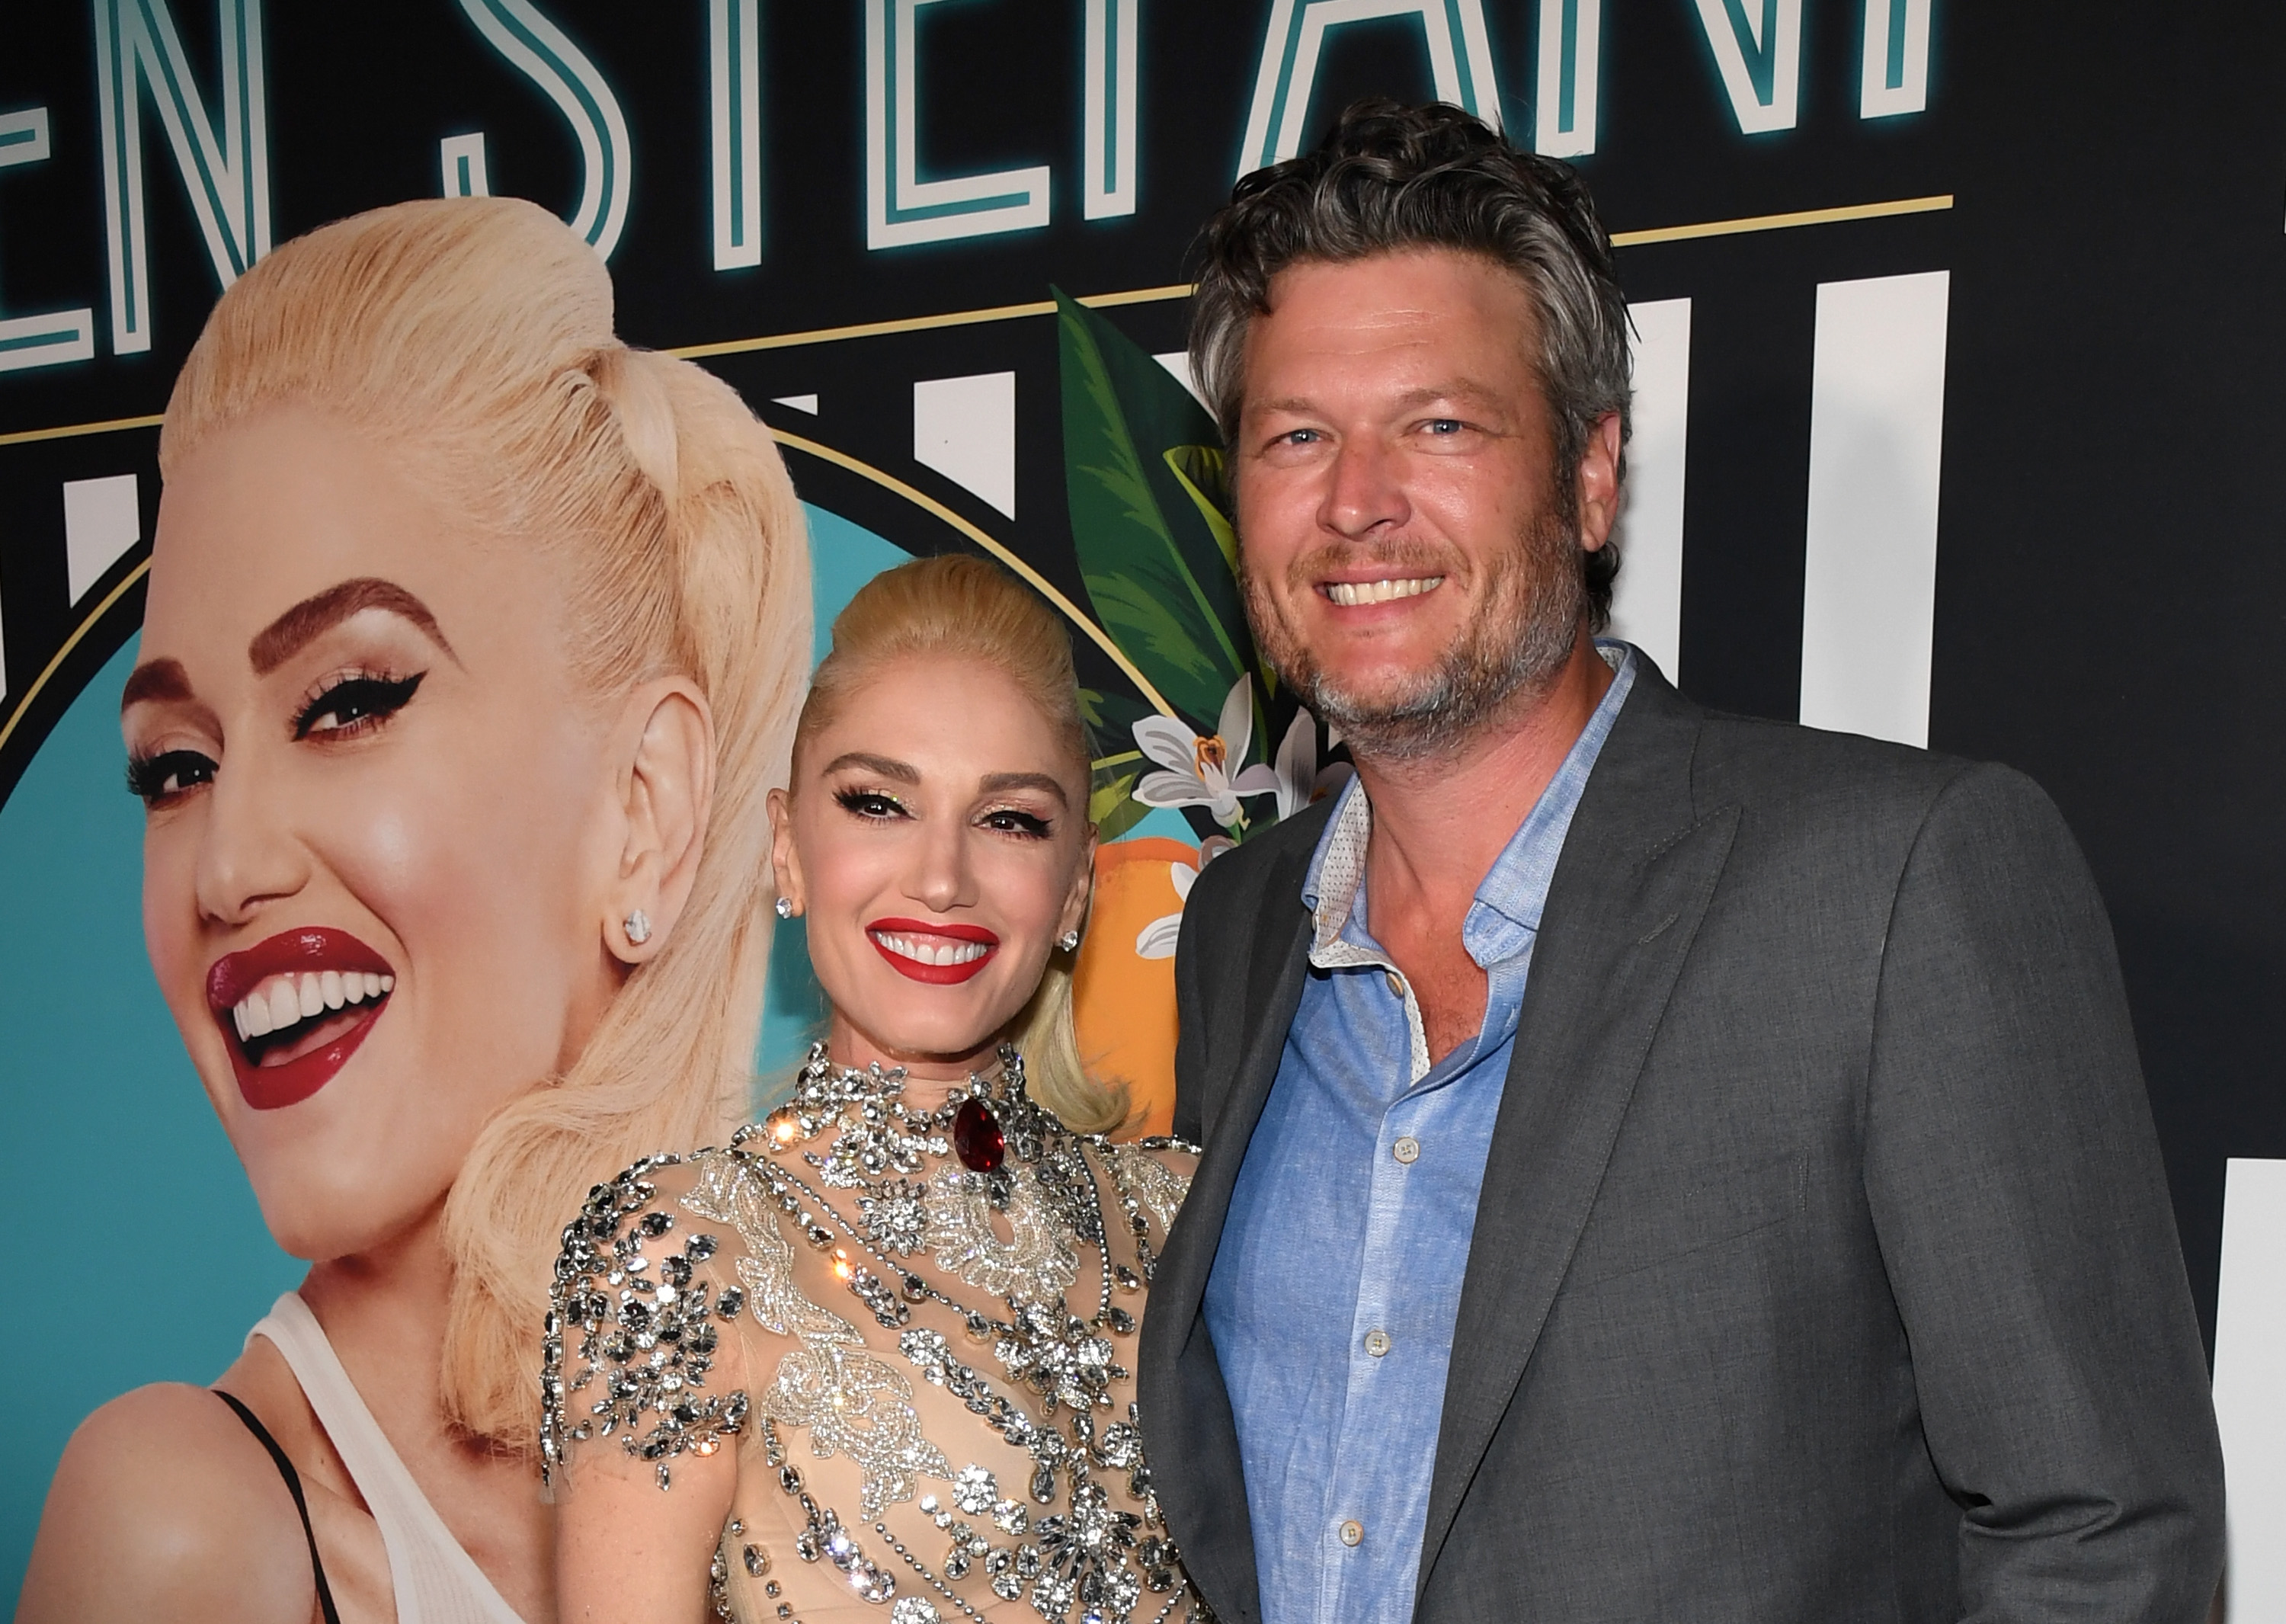 Singer Gwen Stefani (L) and recording artist Blake Shelton attend the grand opening of her 'Gwen Stefani - Just a Girl' residency at Planet Hollywood Resort & Casino on June 28, 2018 in Las Vegas, Nevada.